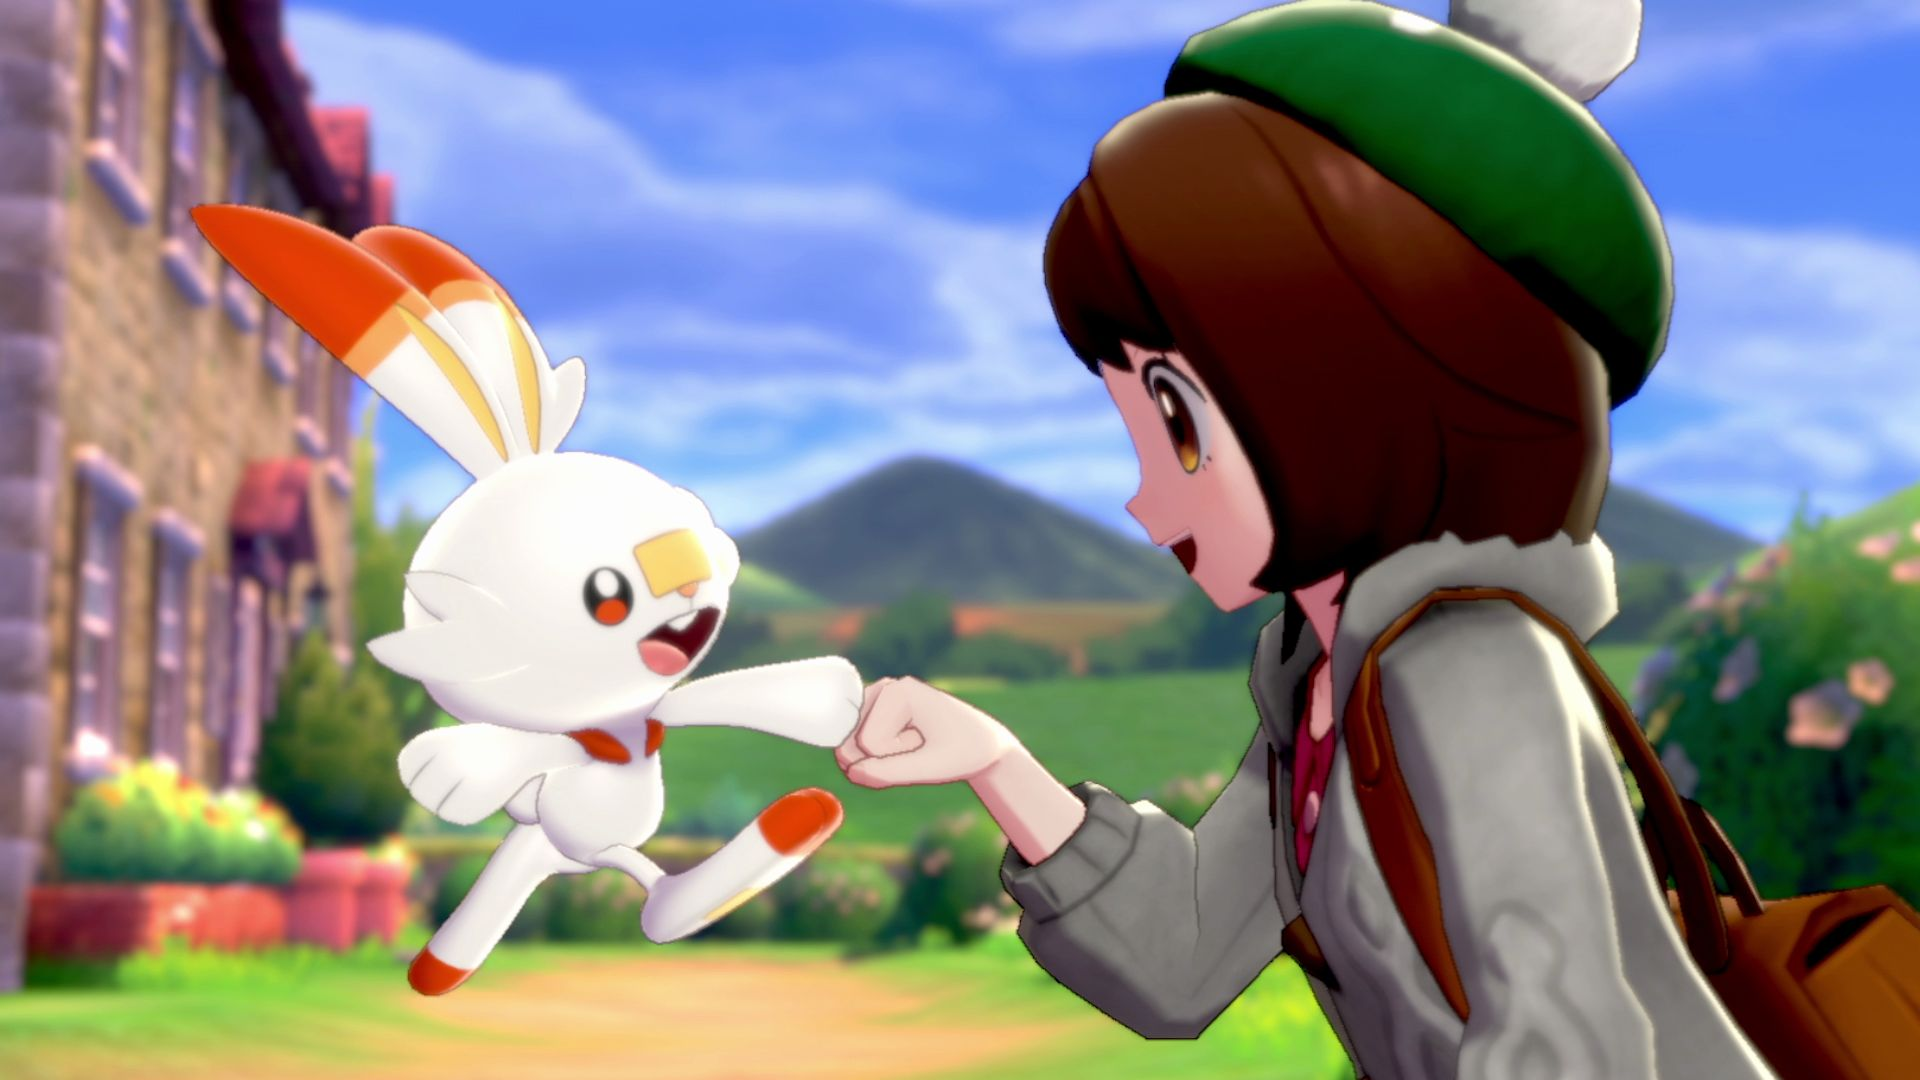 Pokemon Sword and Shield will aggressively market Switch Online subsriptions in-game screenshot